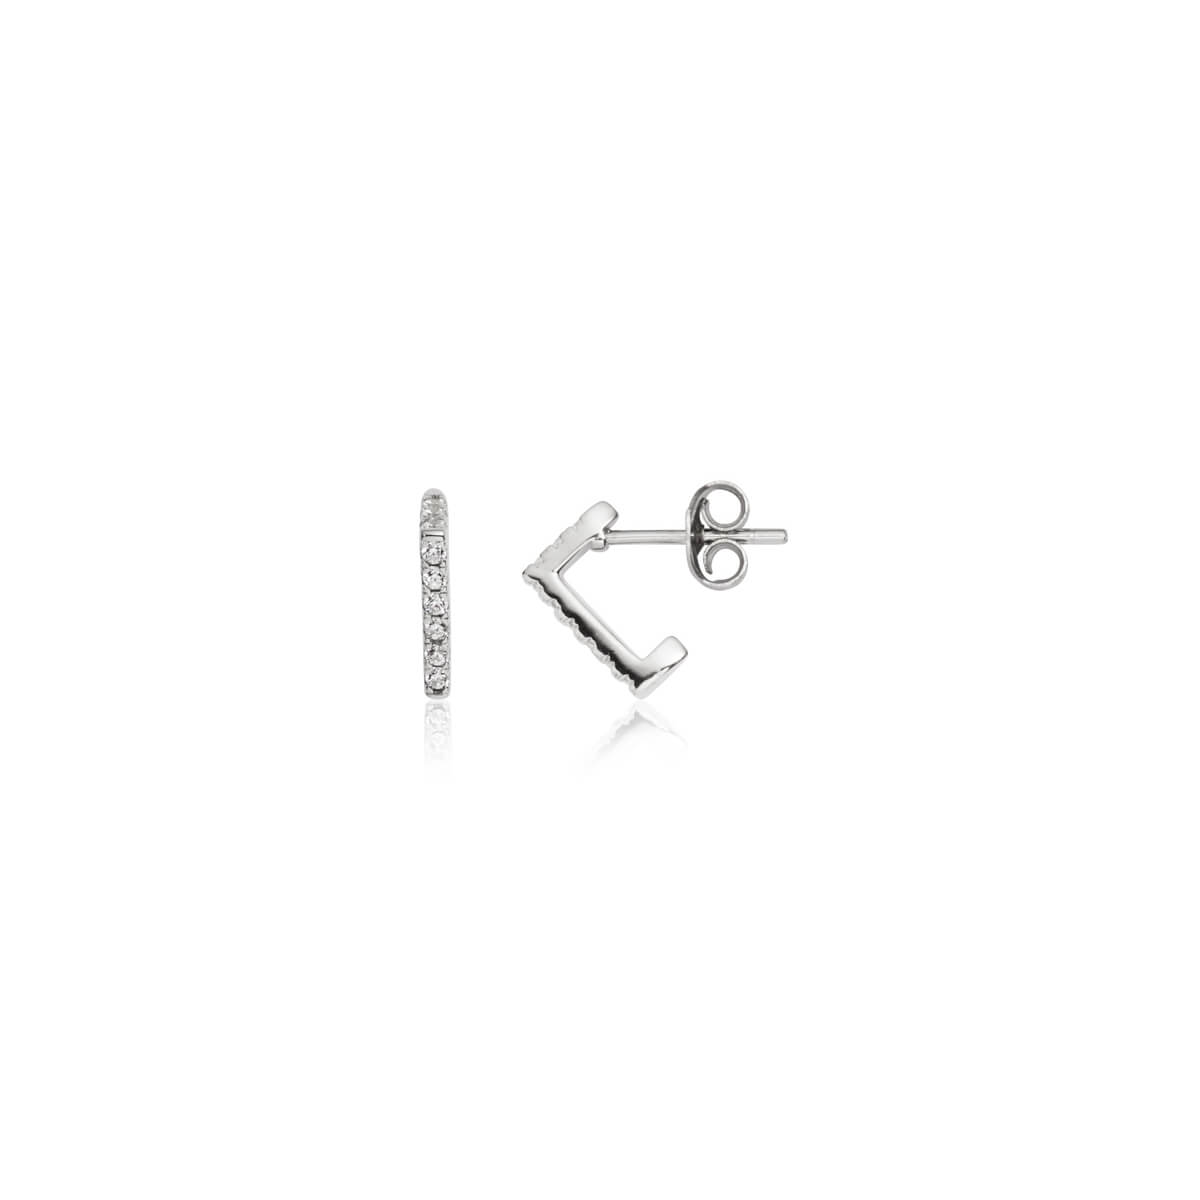 Sterling Silver Crystal Prism Earrings (Silver)